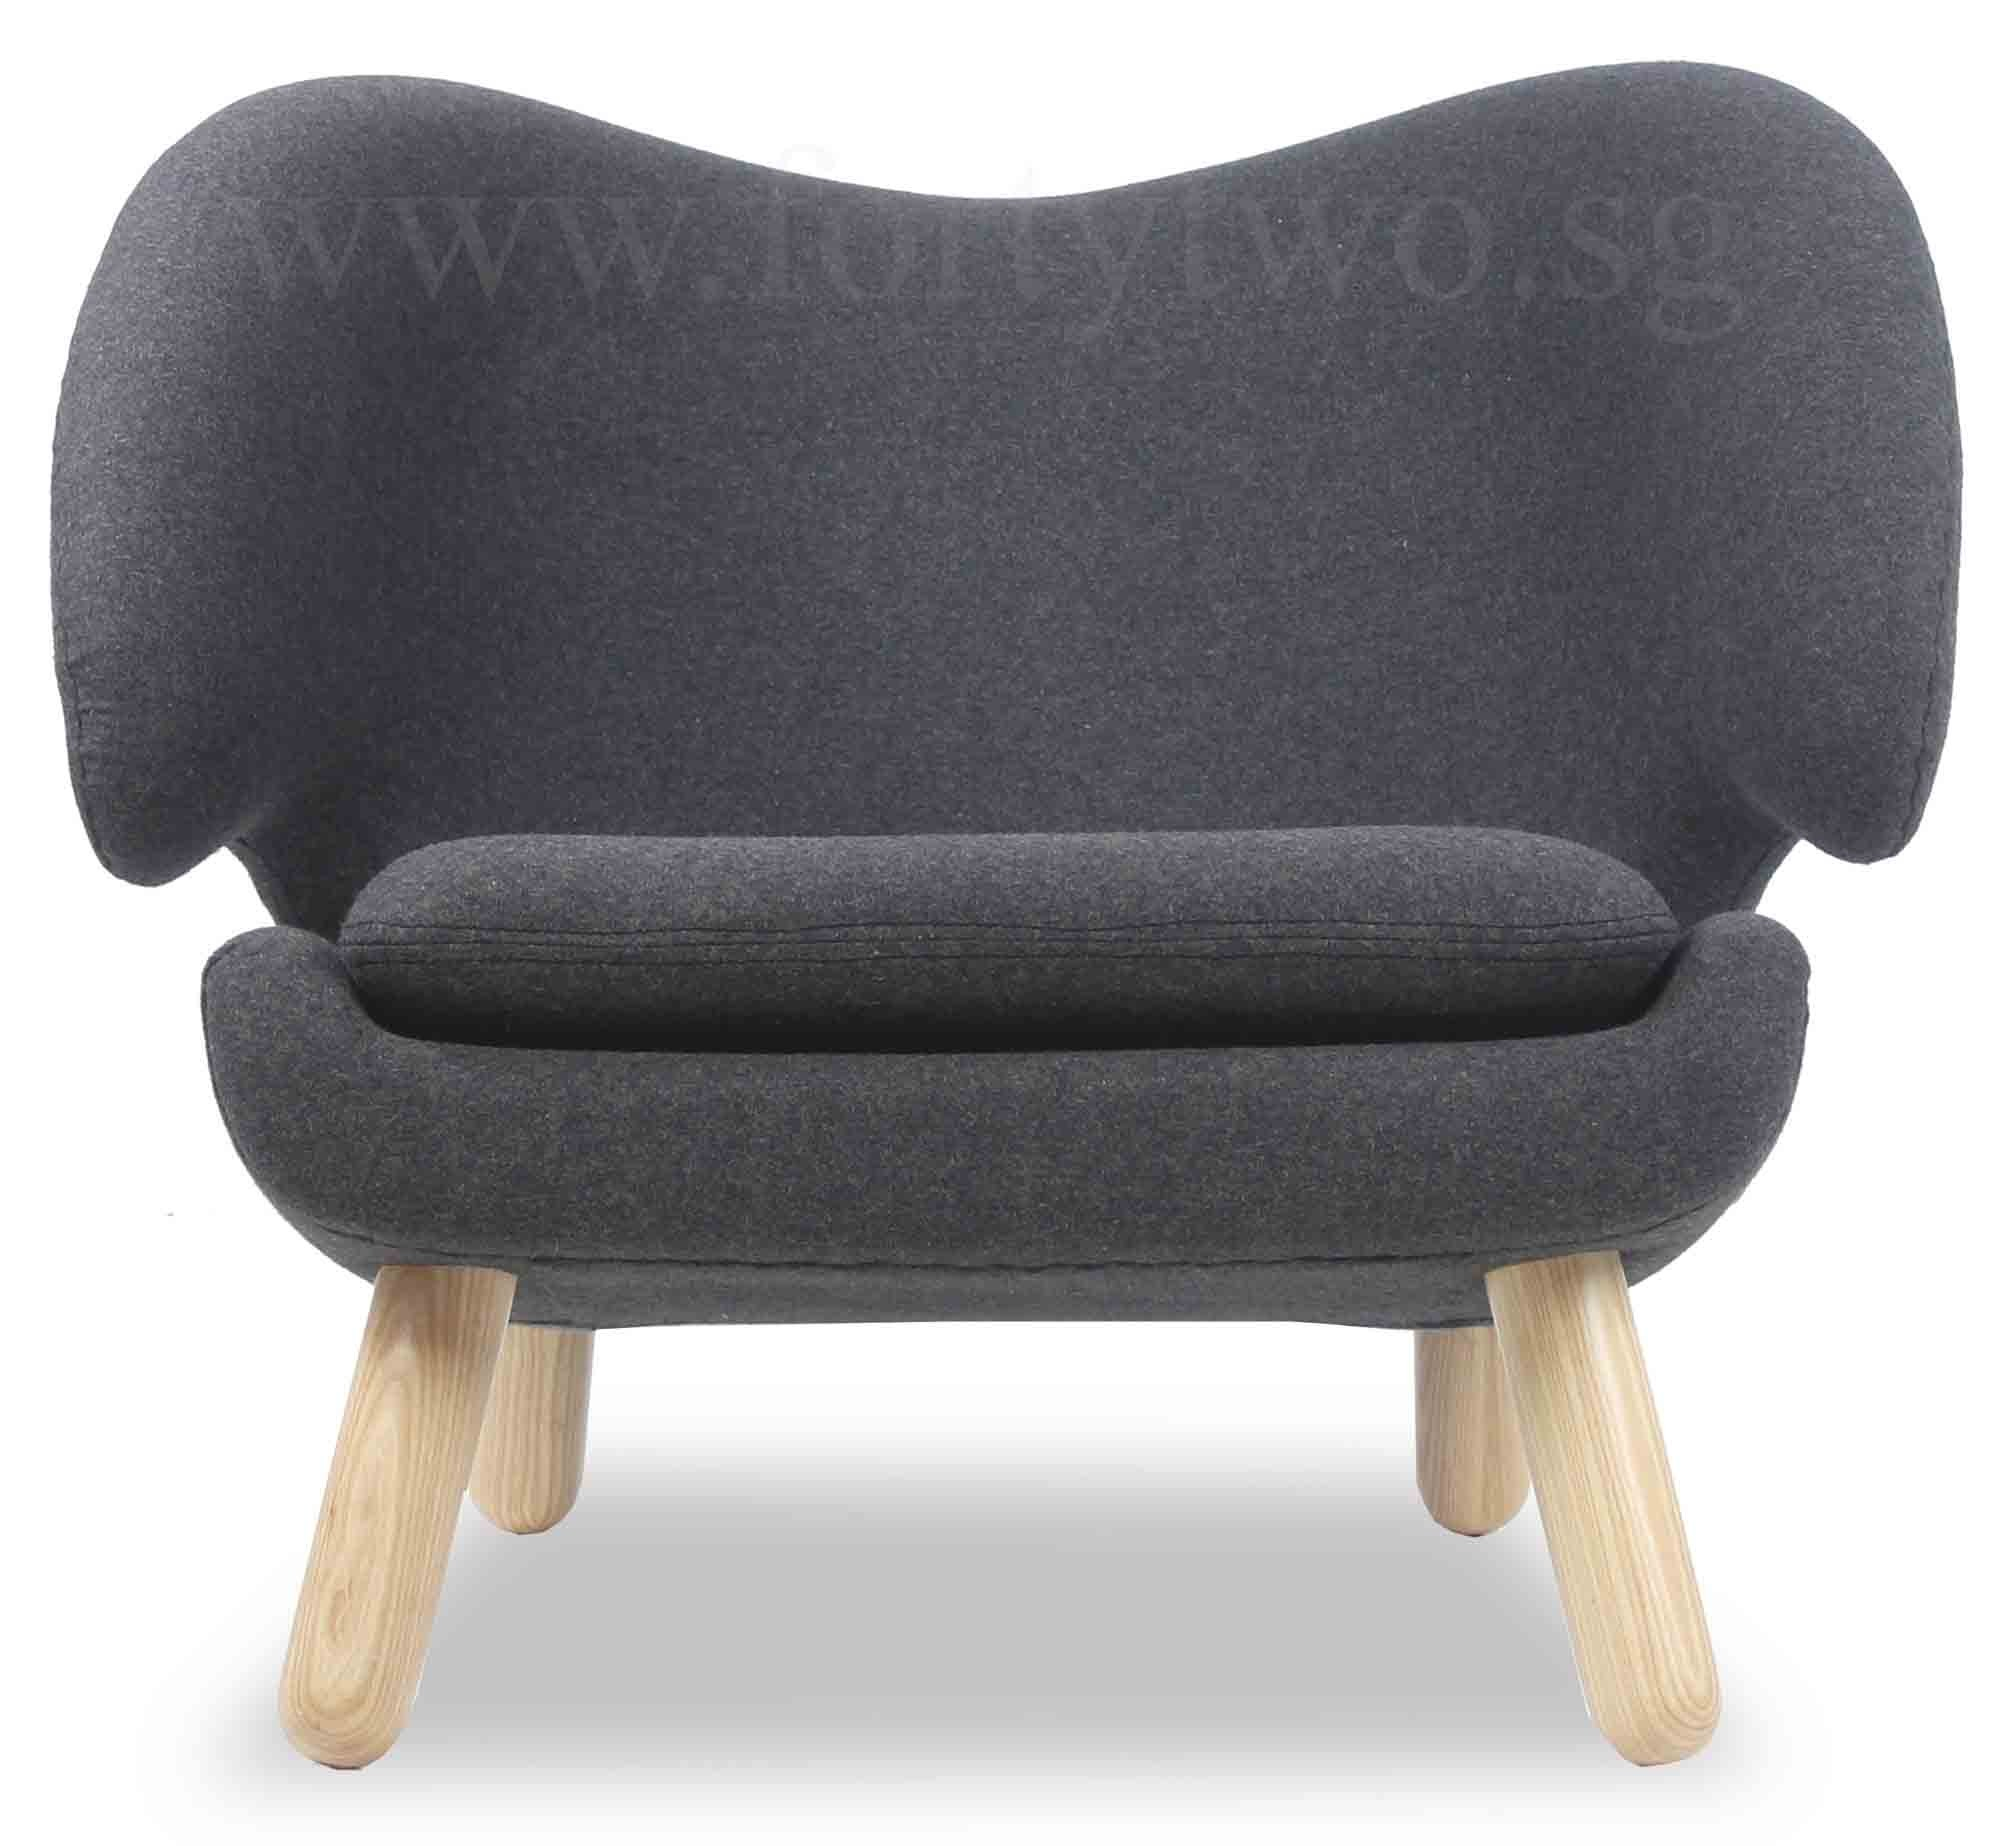 Designer replica pelican chair in charcoal furniture for Imitation designer chairs